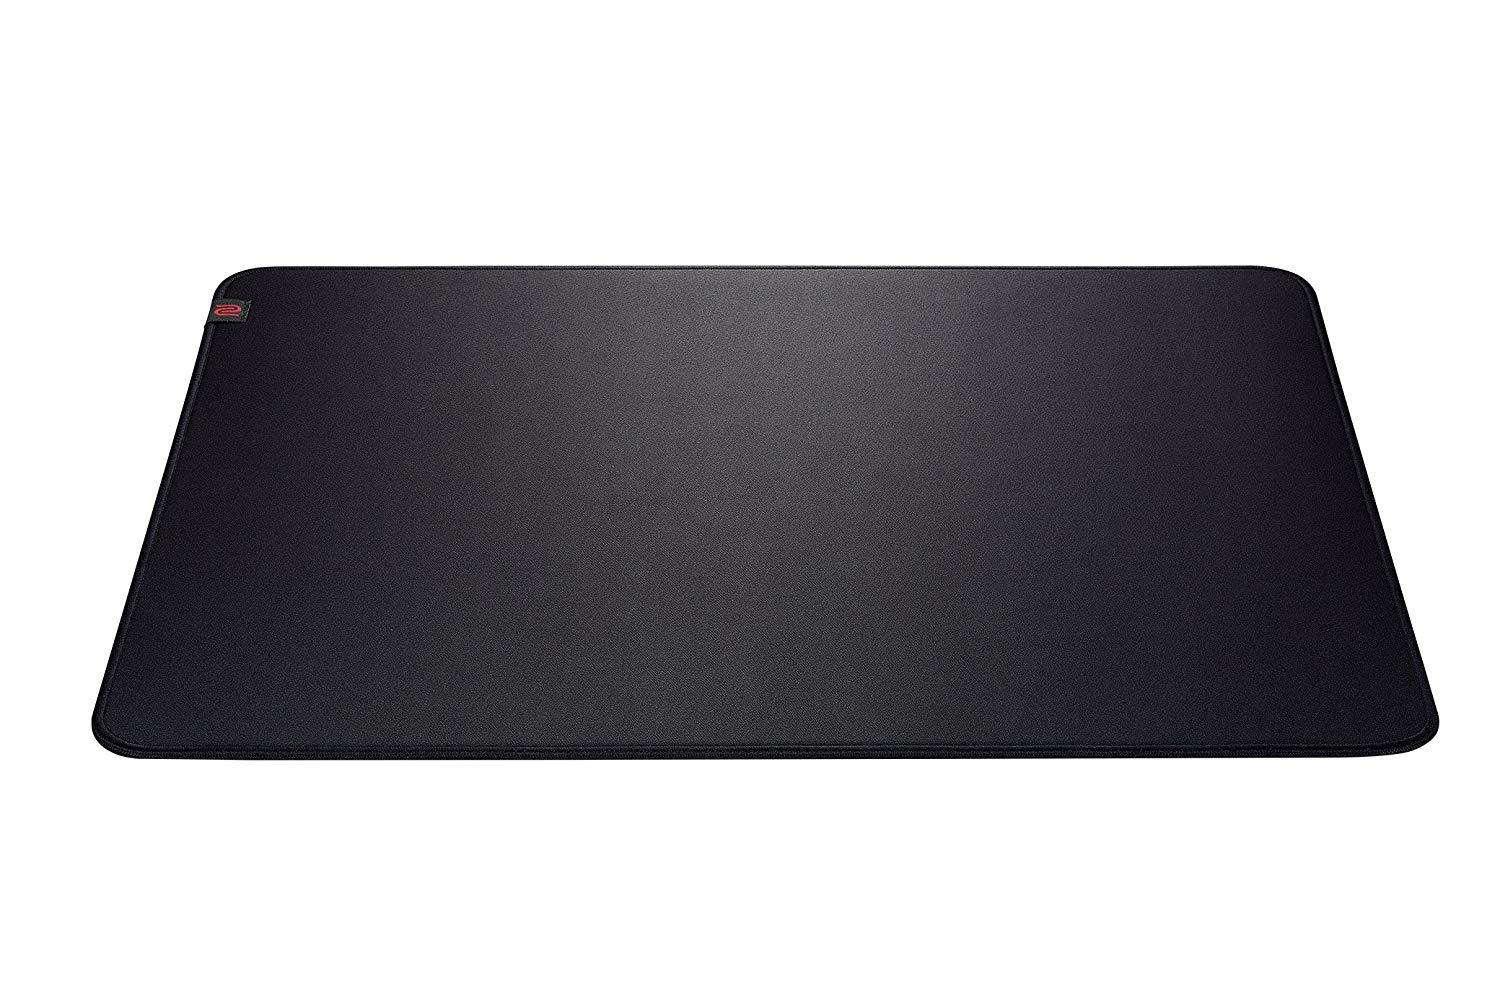 BenQ Zowie G-SR Soft Gaming Mouse Mat - Large, Black